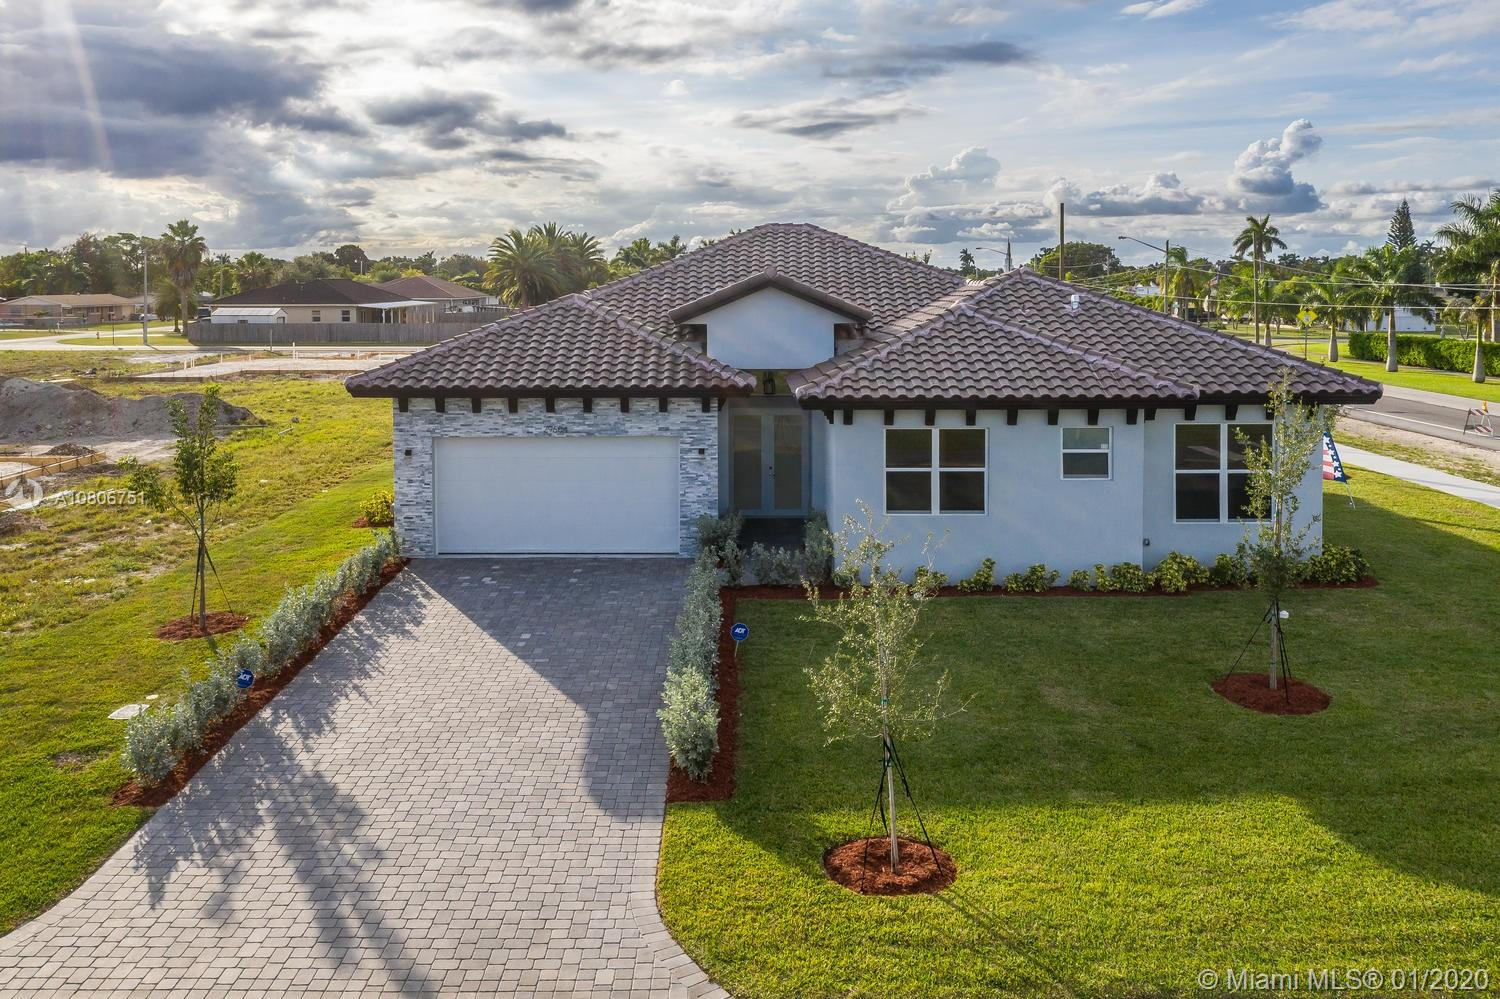 29128 SW 165 AVE, Homestead, FL 33030 - Homestead, FL real estate listing